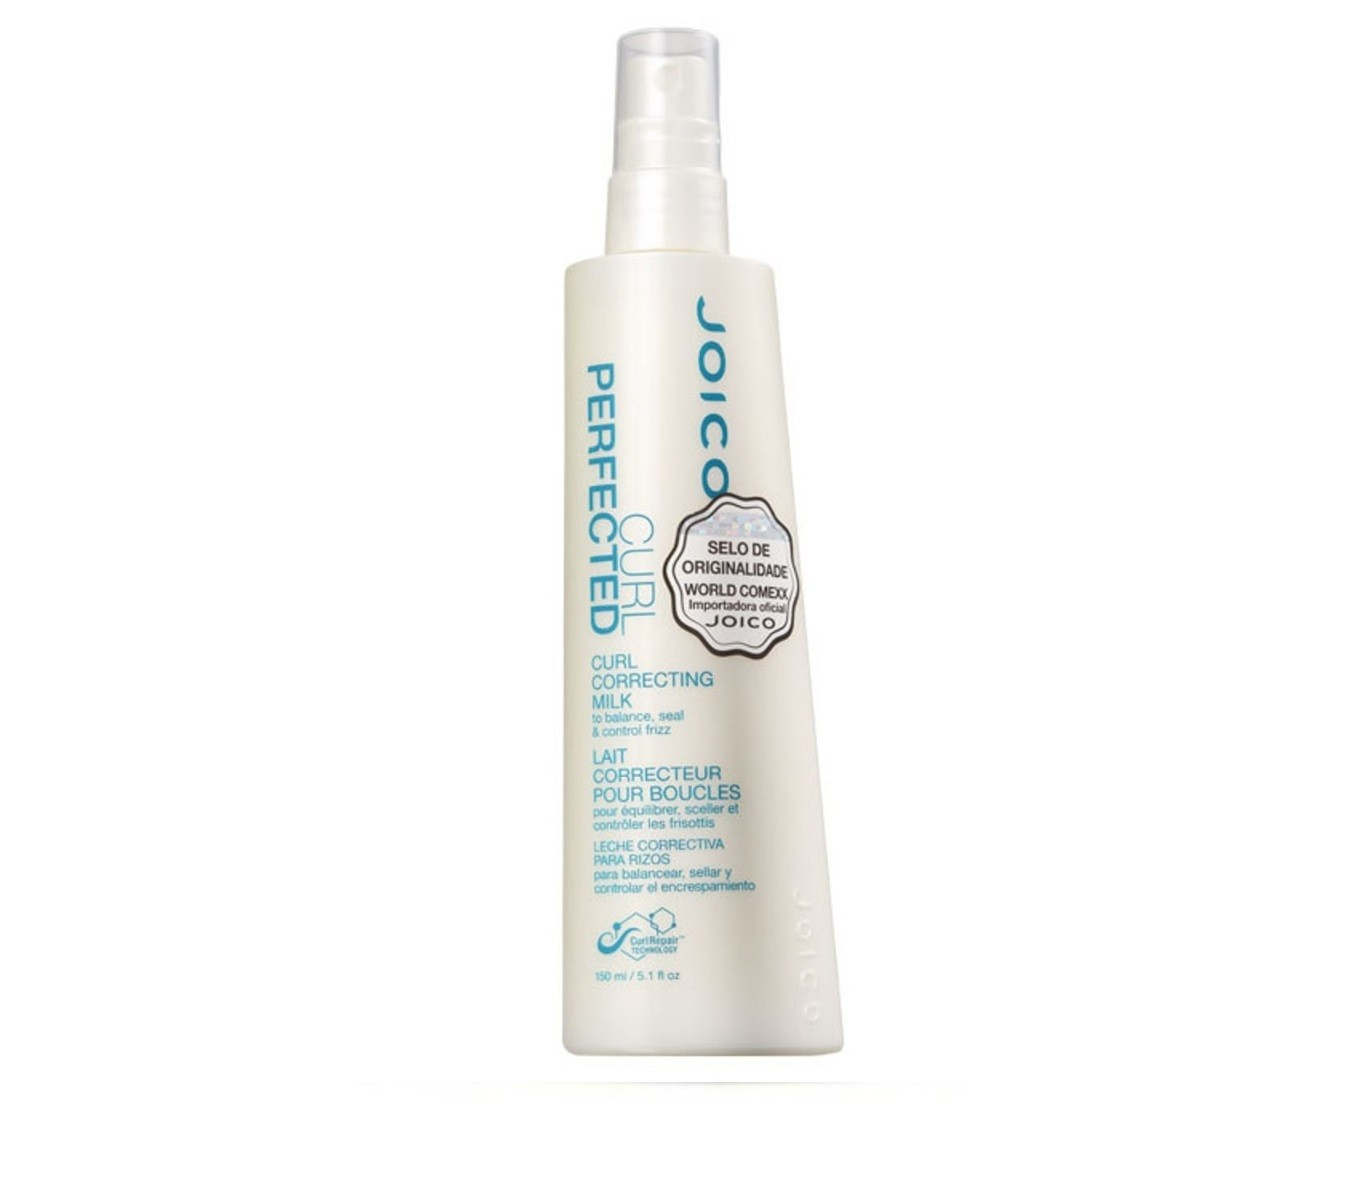 Joico Curl Perfected Correcting Milk Spray Leave-in 150ml - RF